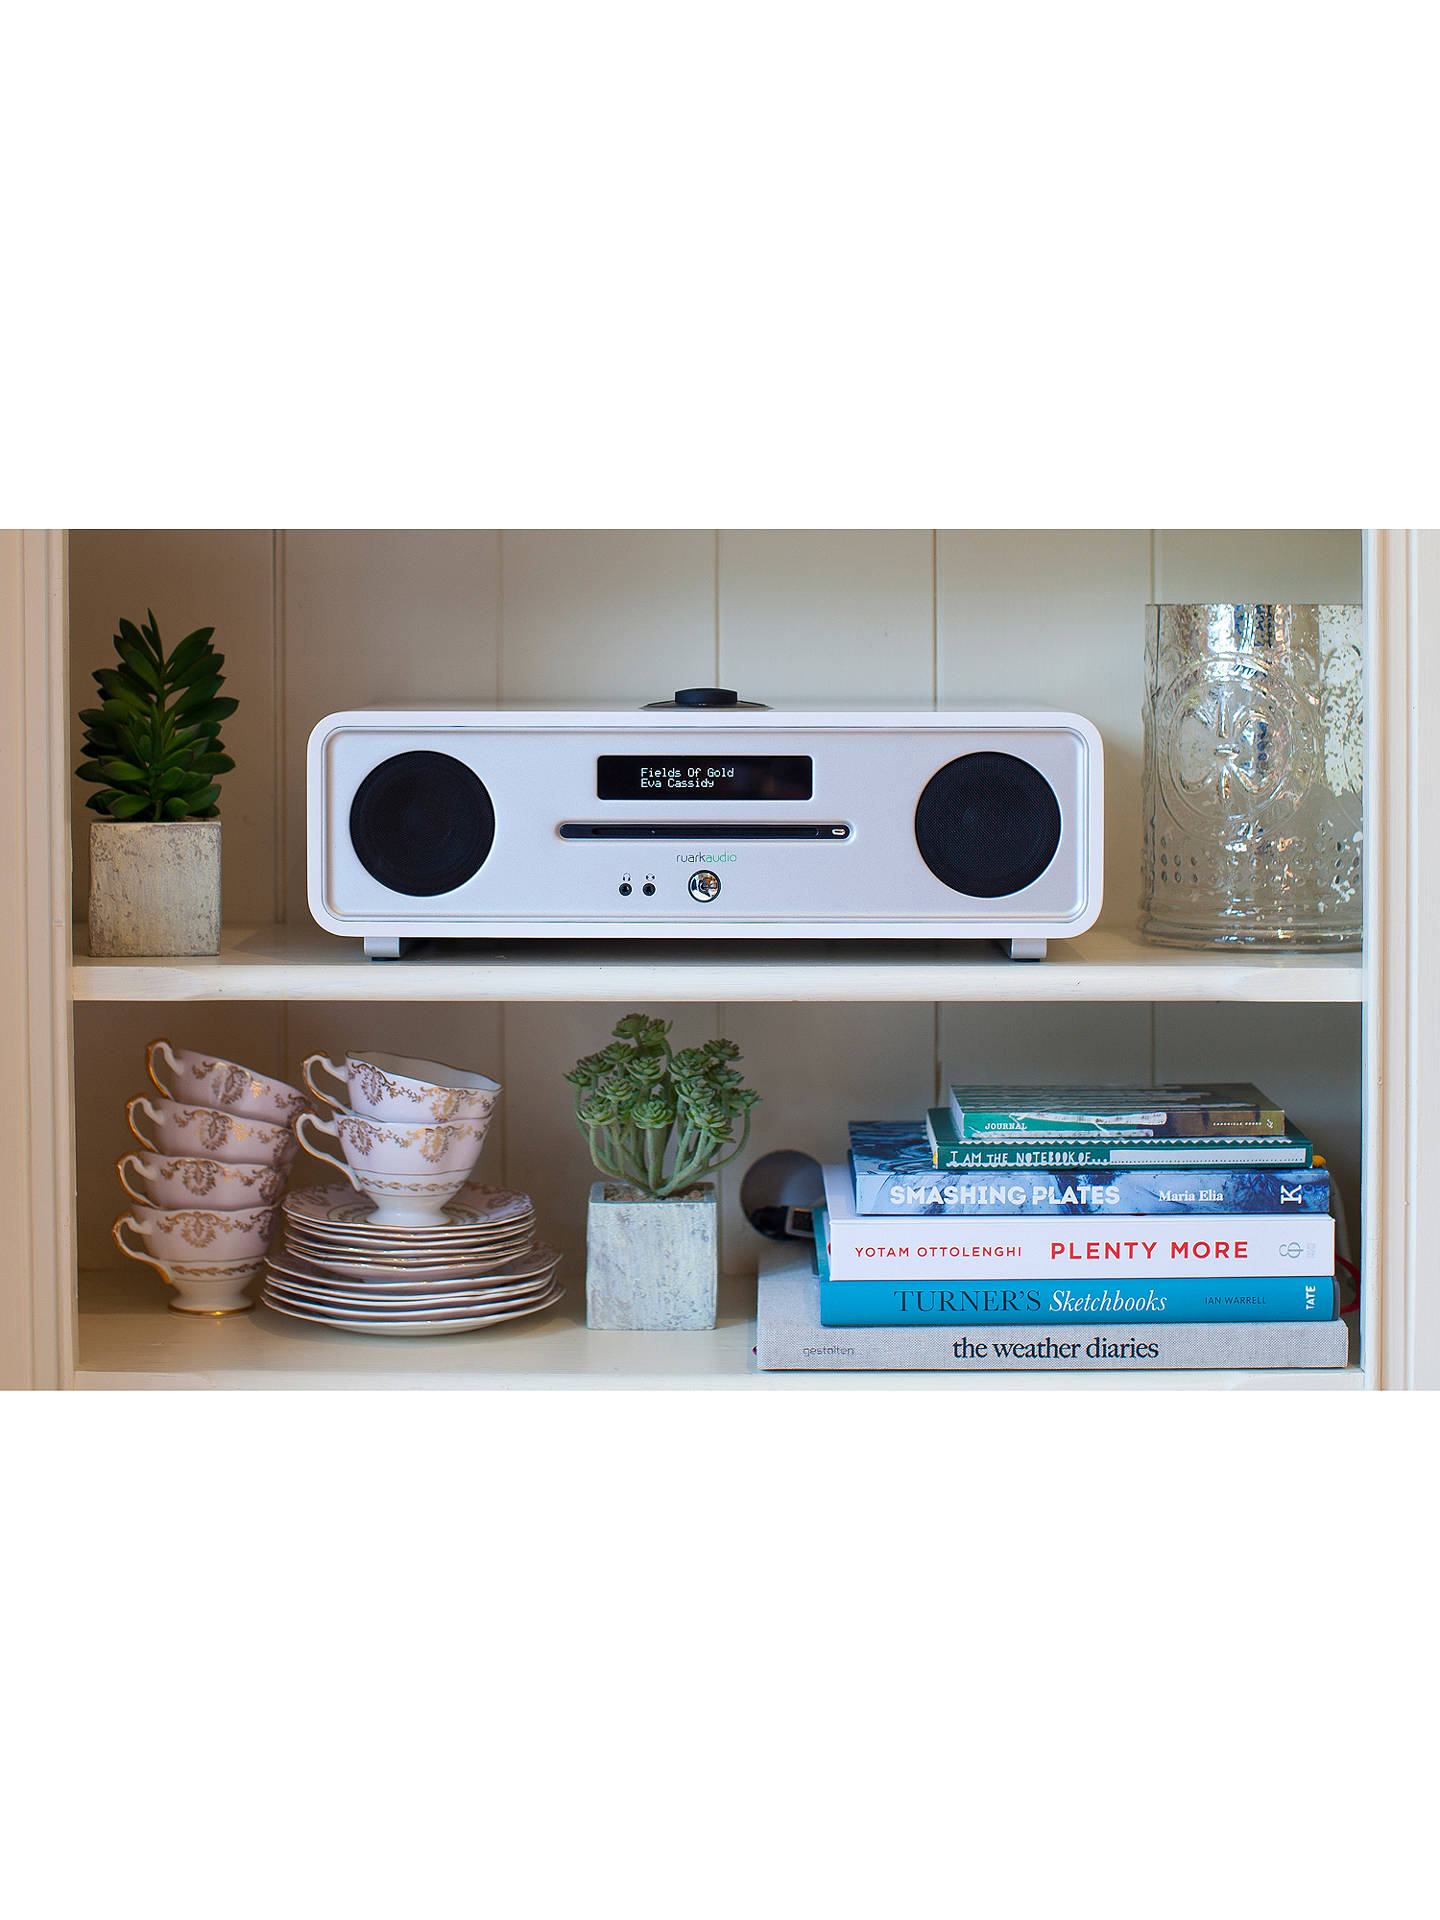 BuyRuark R4 MK3 DAB/DAB+/FM Radio & CD Bluetooth All-In-One Music System with OLED Display, Soft White Online at johnlewis.com